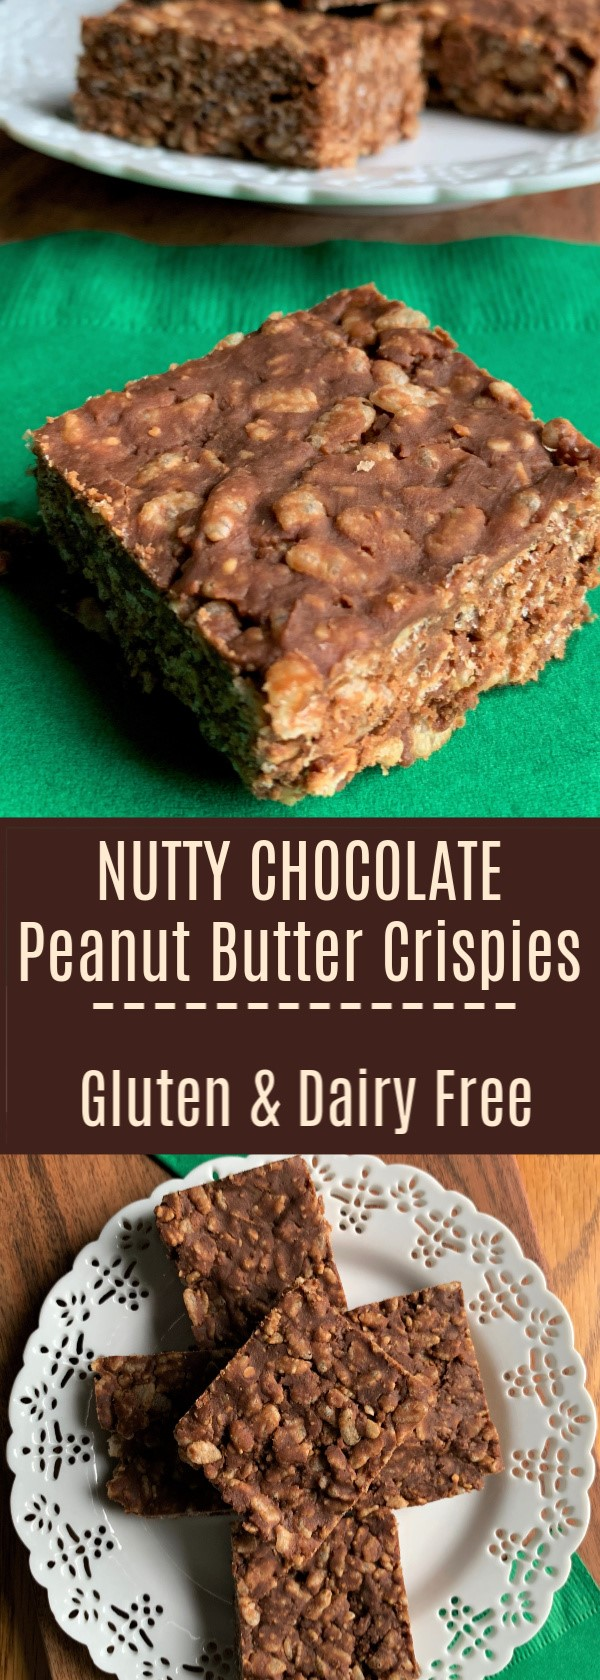 Nutty Chocolate Peanut Butter Crispies! Gluten Free and a Dairy Free Option with Half the Sugar